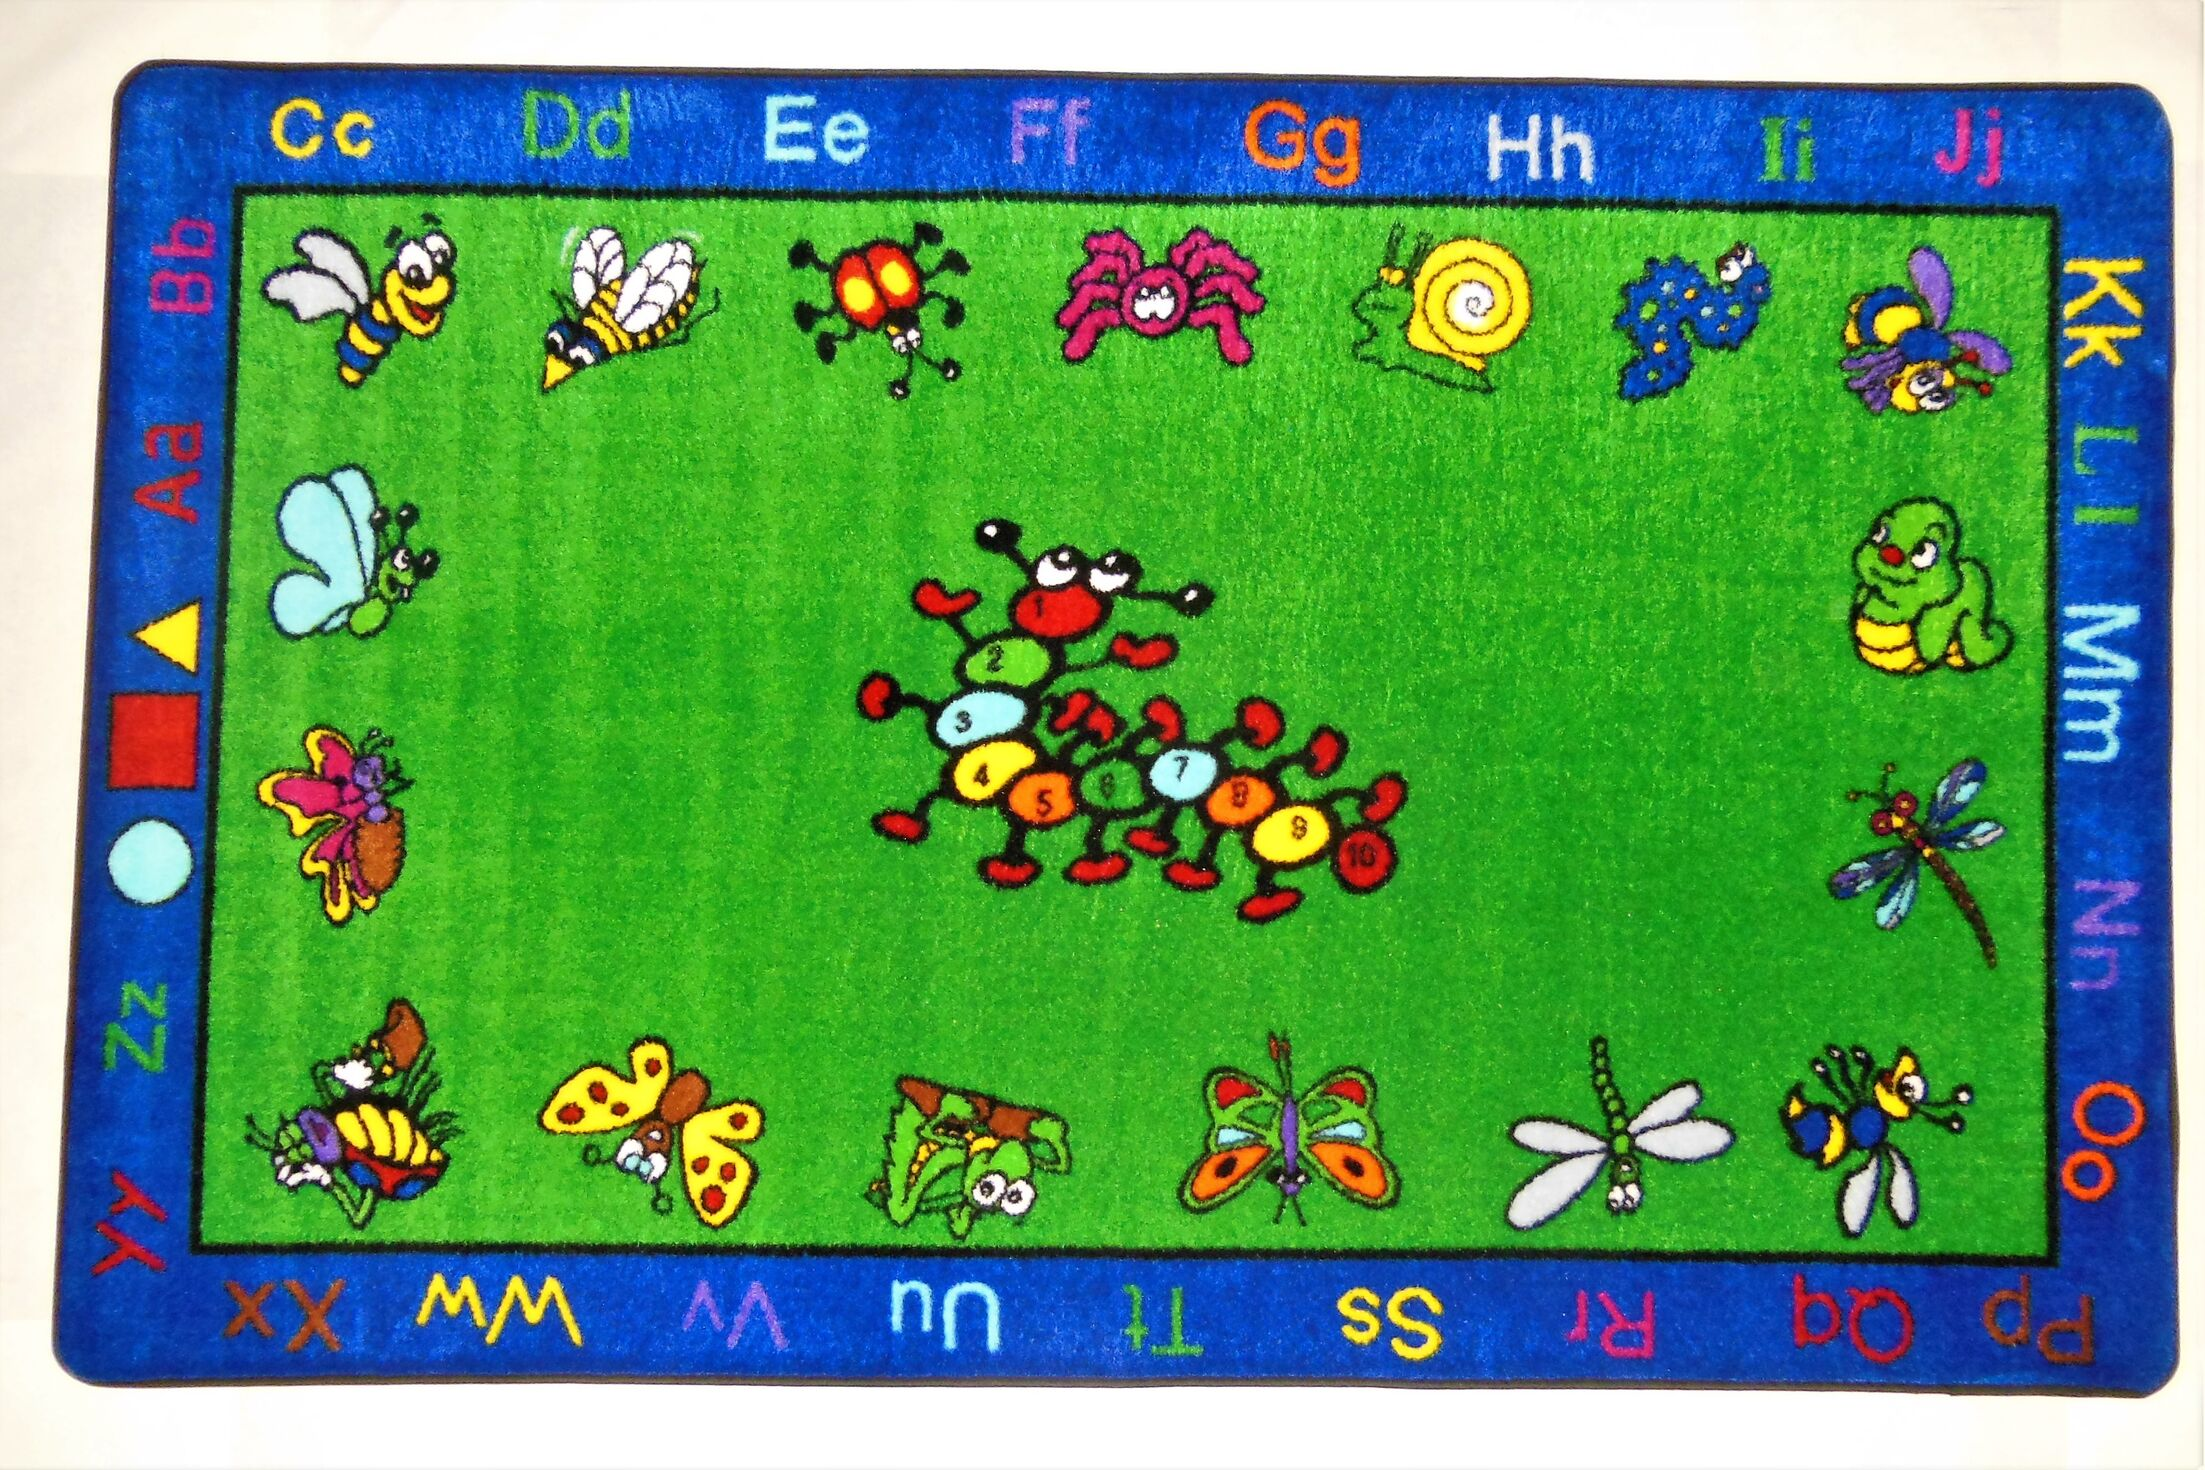 Fun Learning Critters Green/Blue Area Rug Rug Size: Oval 5' x 8'